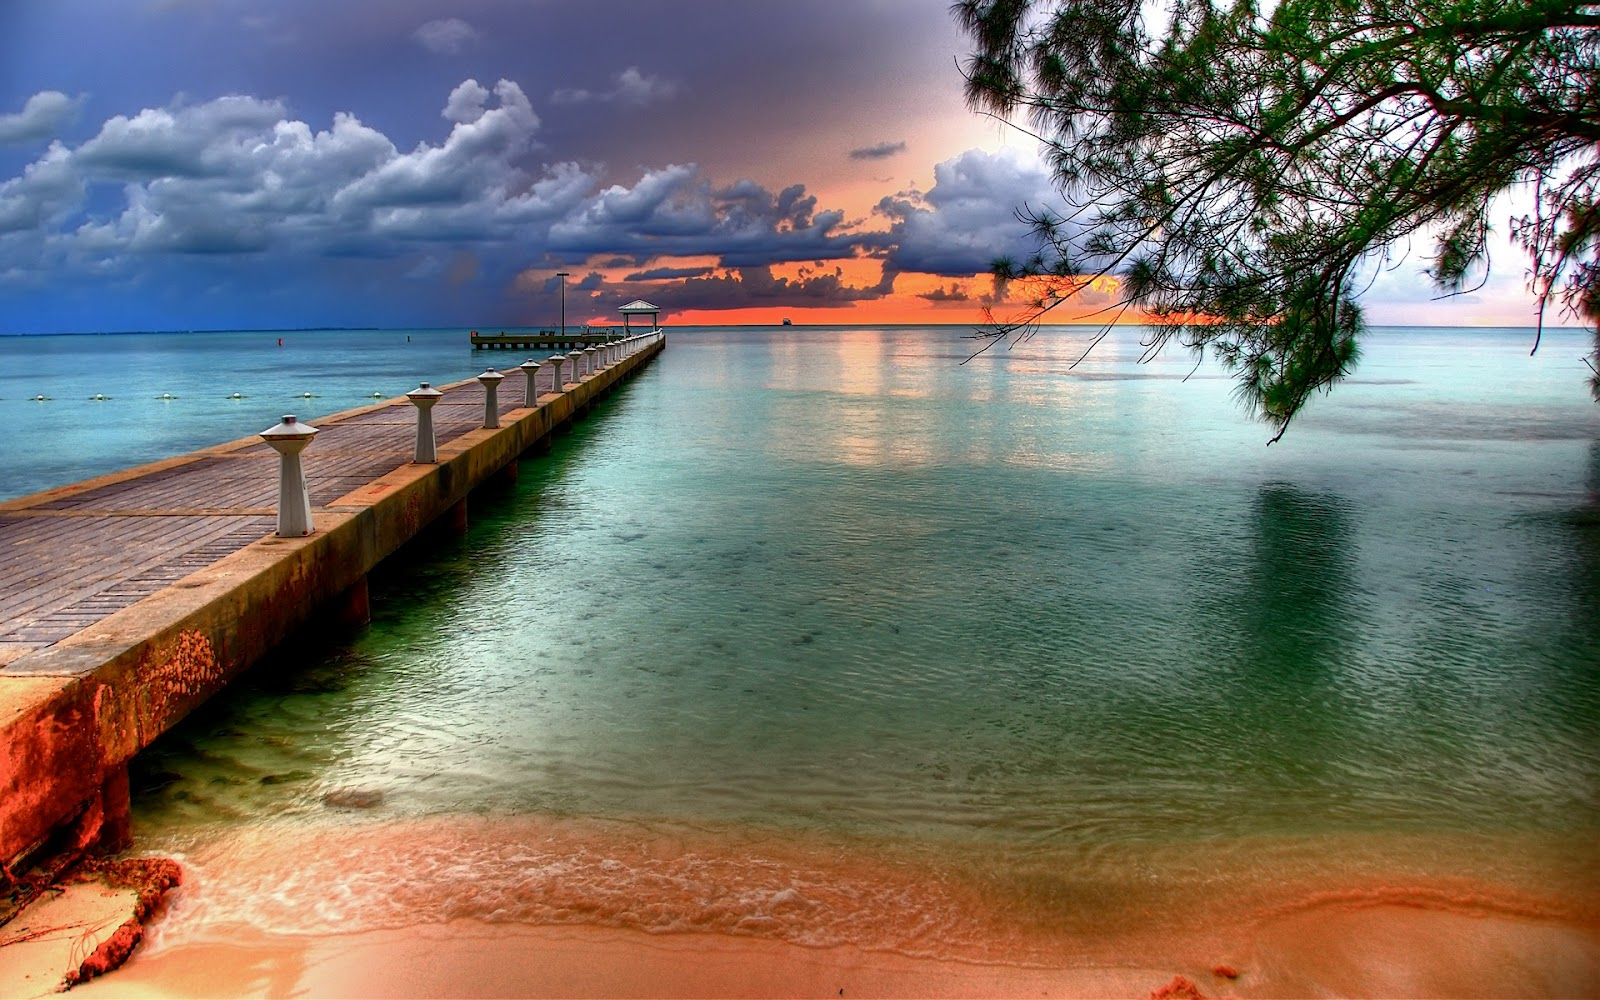 http://1.bp.blogspot.com/-b8YPUpXLA0c/UG15BXHddaI/AAAAAAAAD6g/LacoE4WgWfQ/s1600/rum_point_wallpaper_cayman_islands_world_hd-wallpaper.jpg